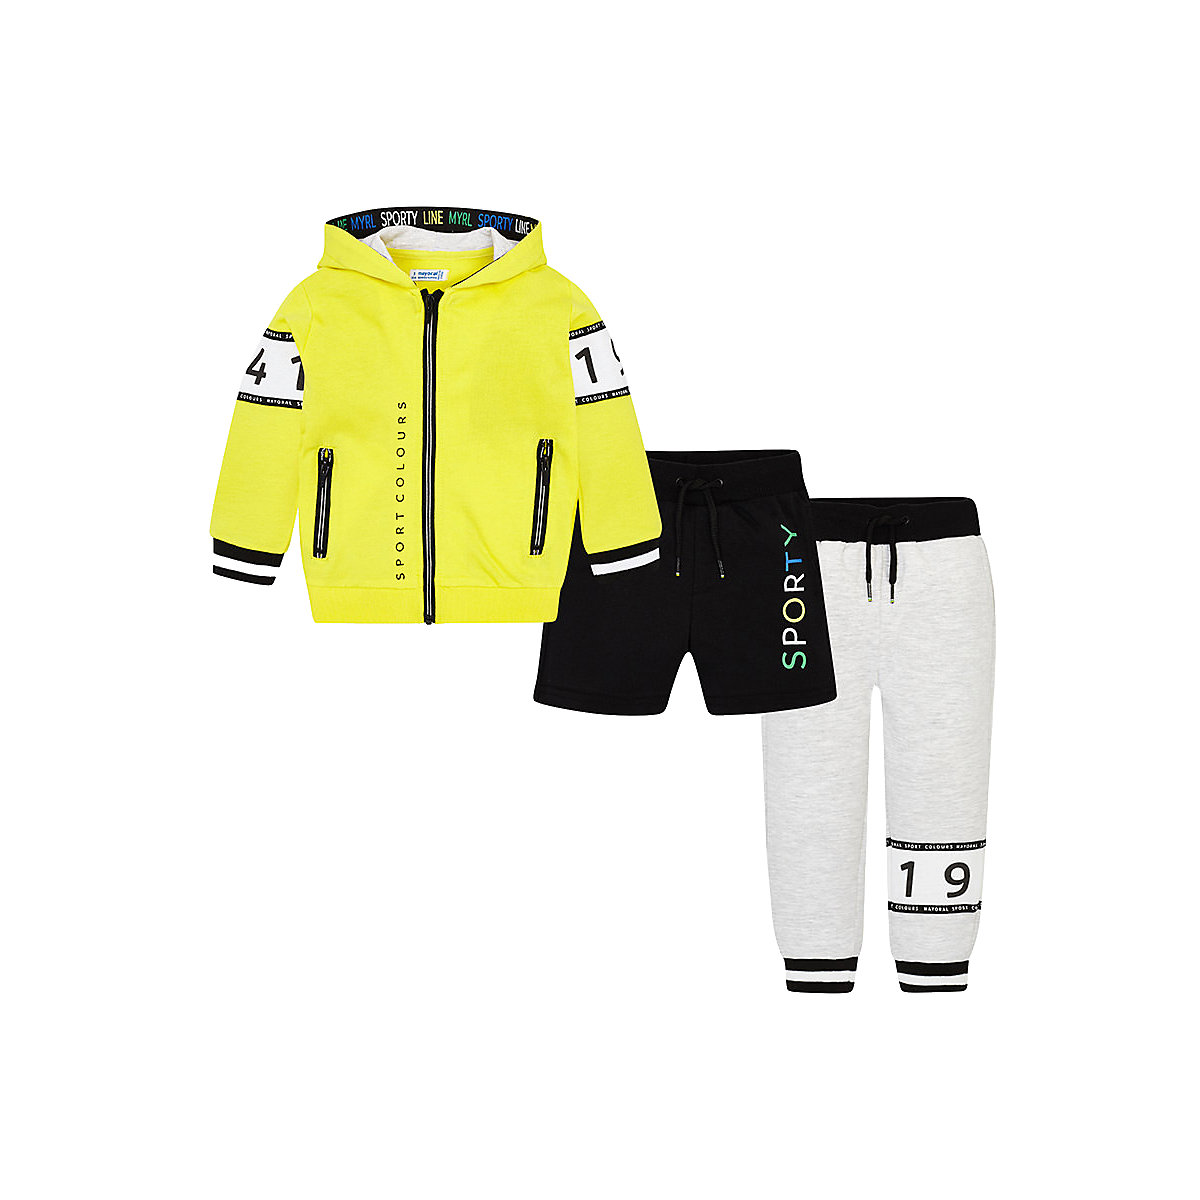 Children Two-Piece Suits Mayoral 10685238 Children Sportswear Accessories Costumes For The Child